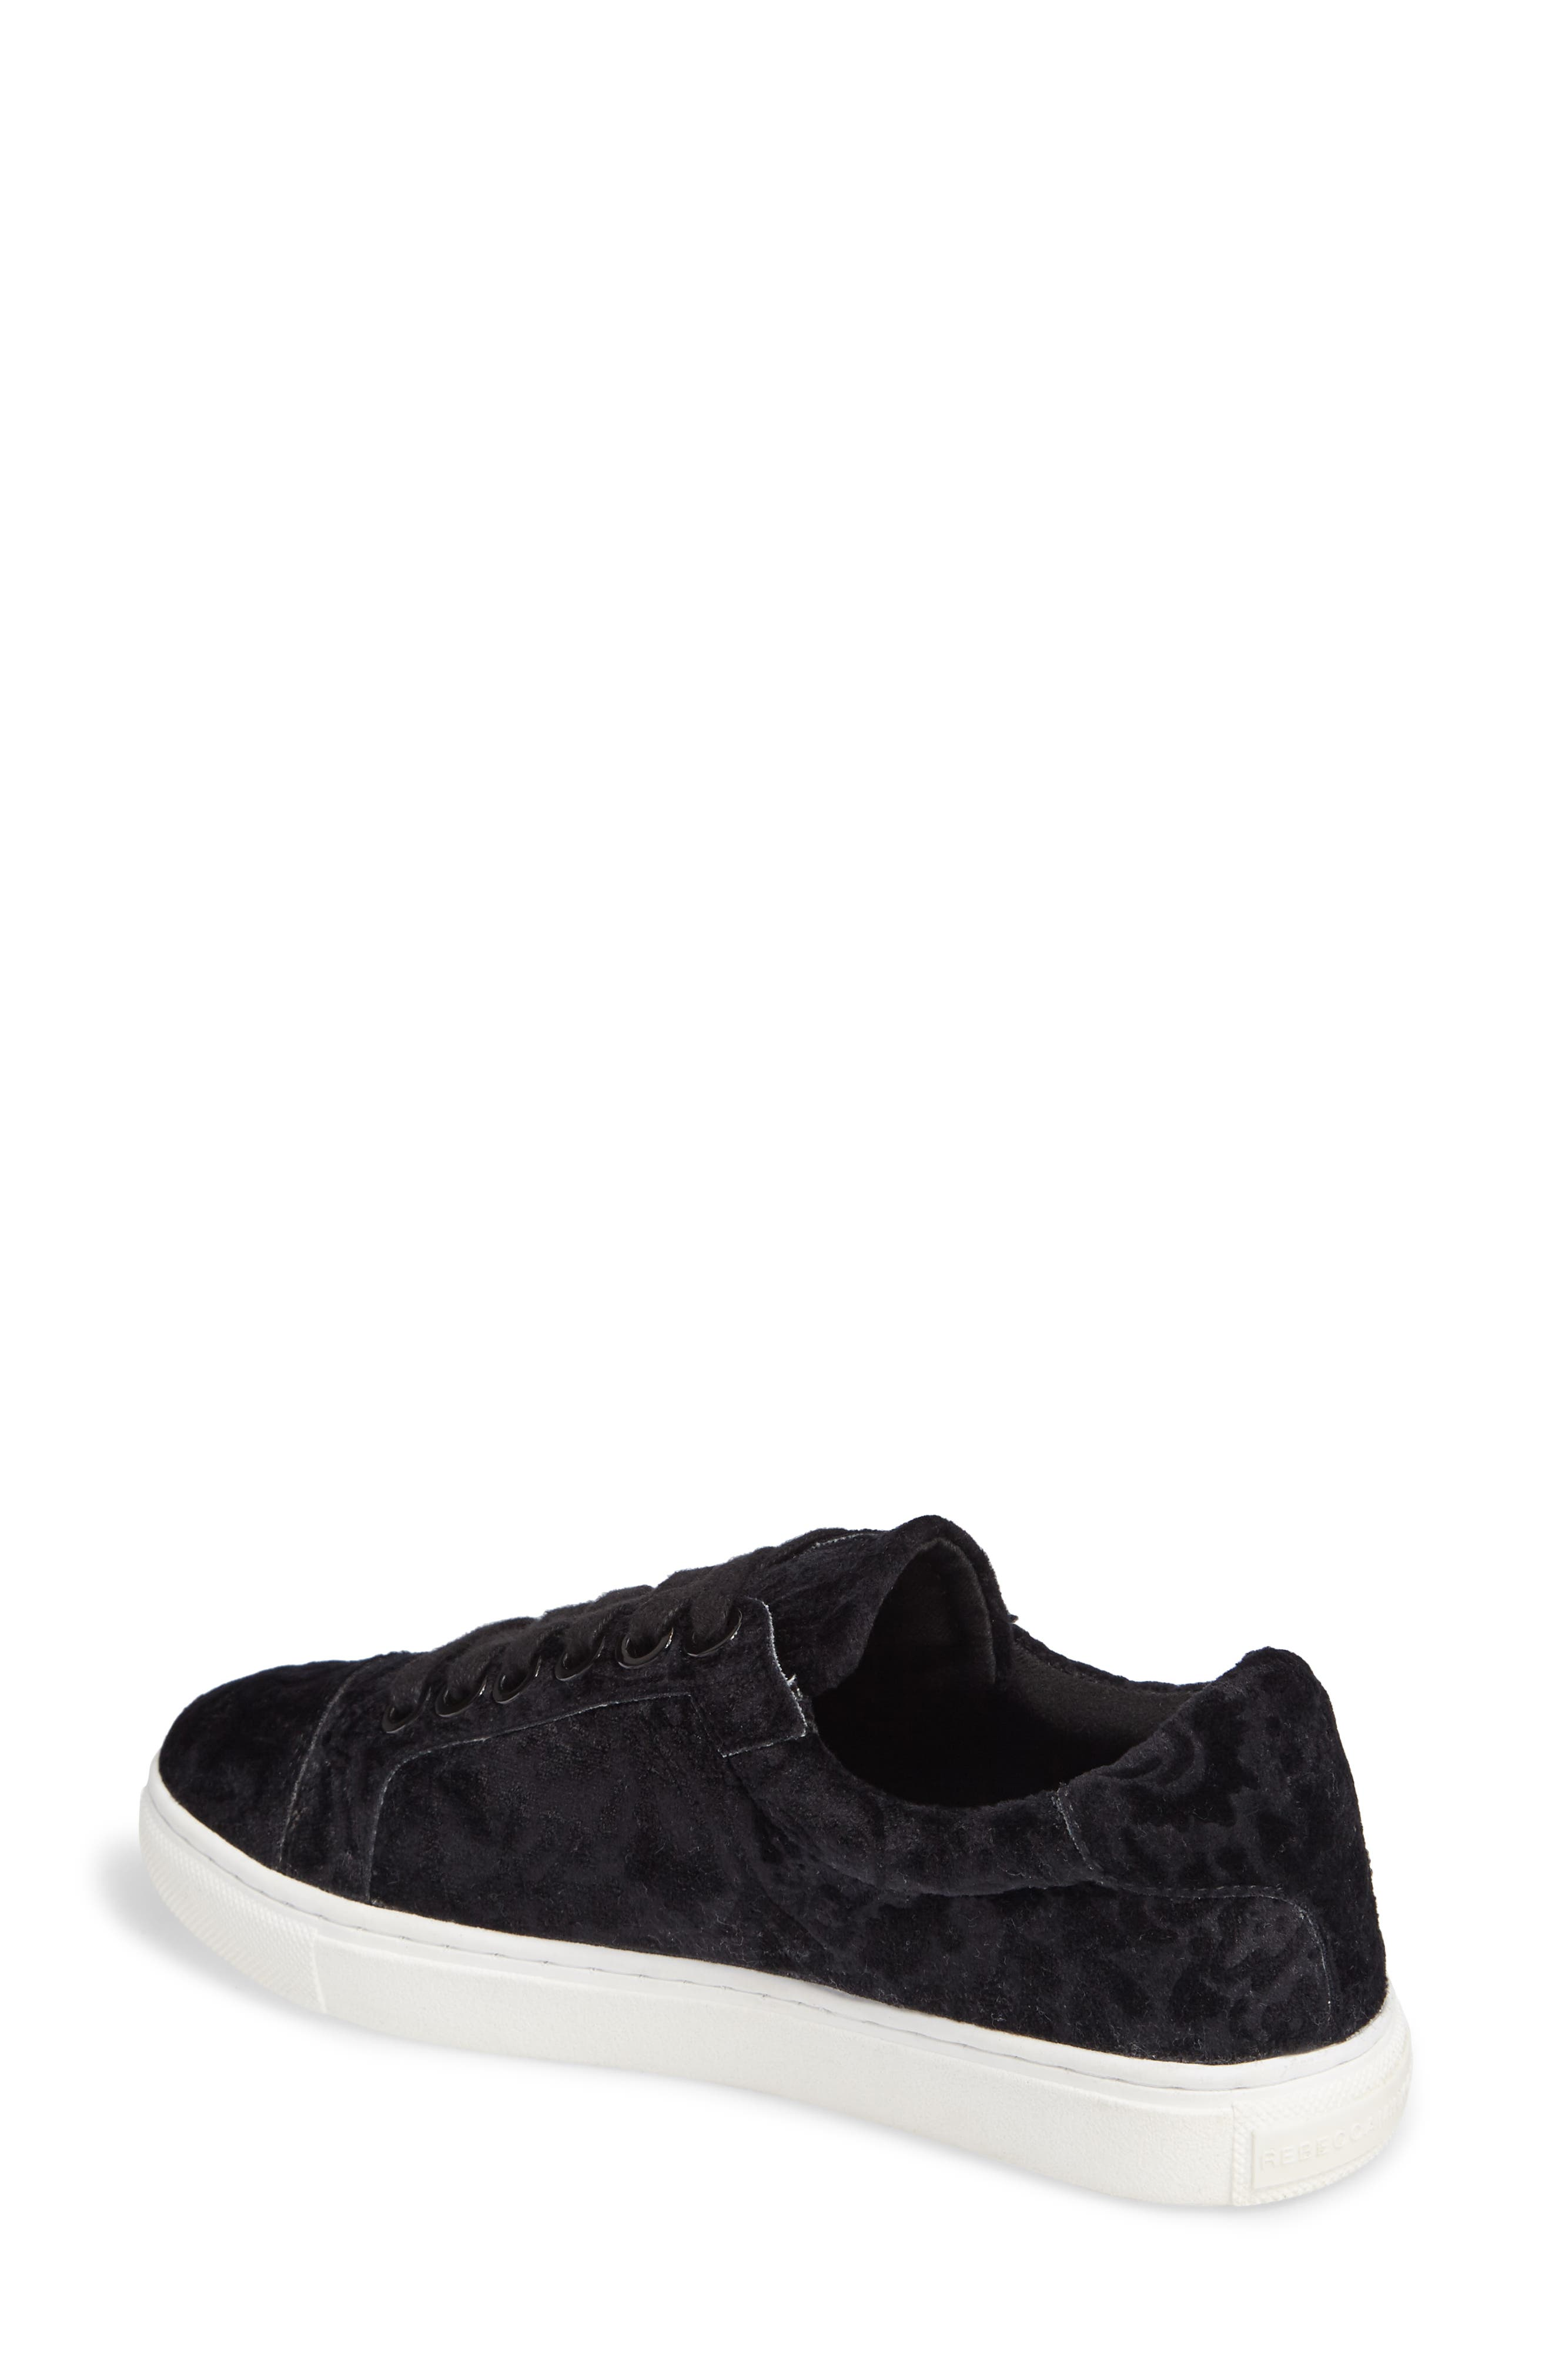 Bleecker Too Sneaker,                             Alternate thumbnail 2, color,                             Black Floral Velvet